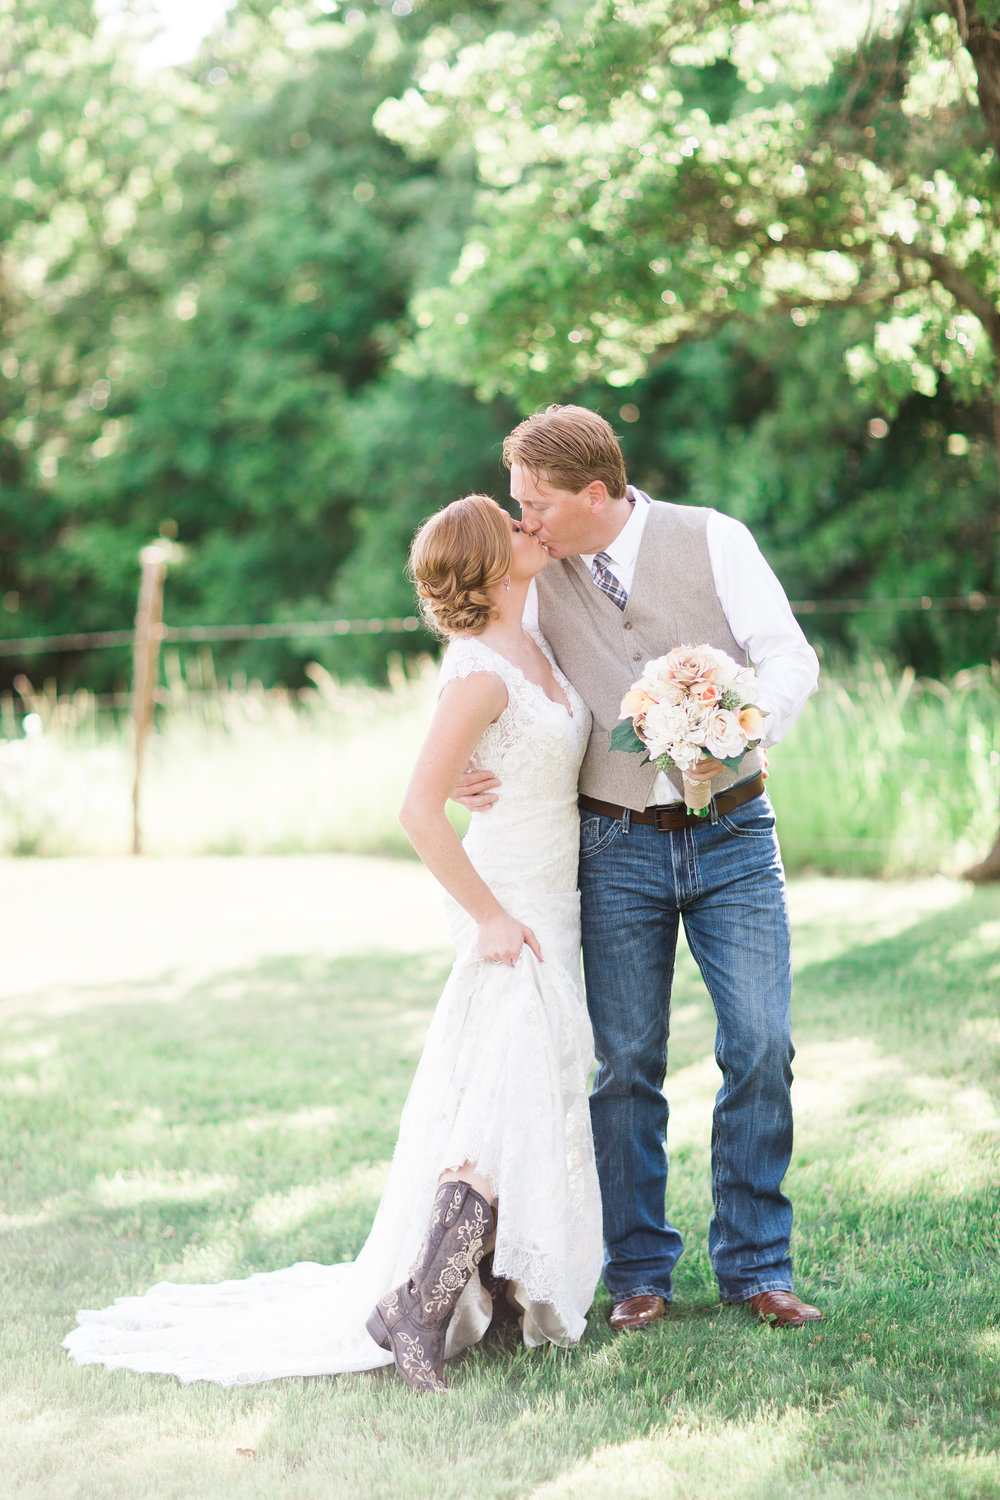 Alexis + Shawn - The Springs in Denton